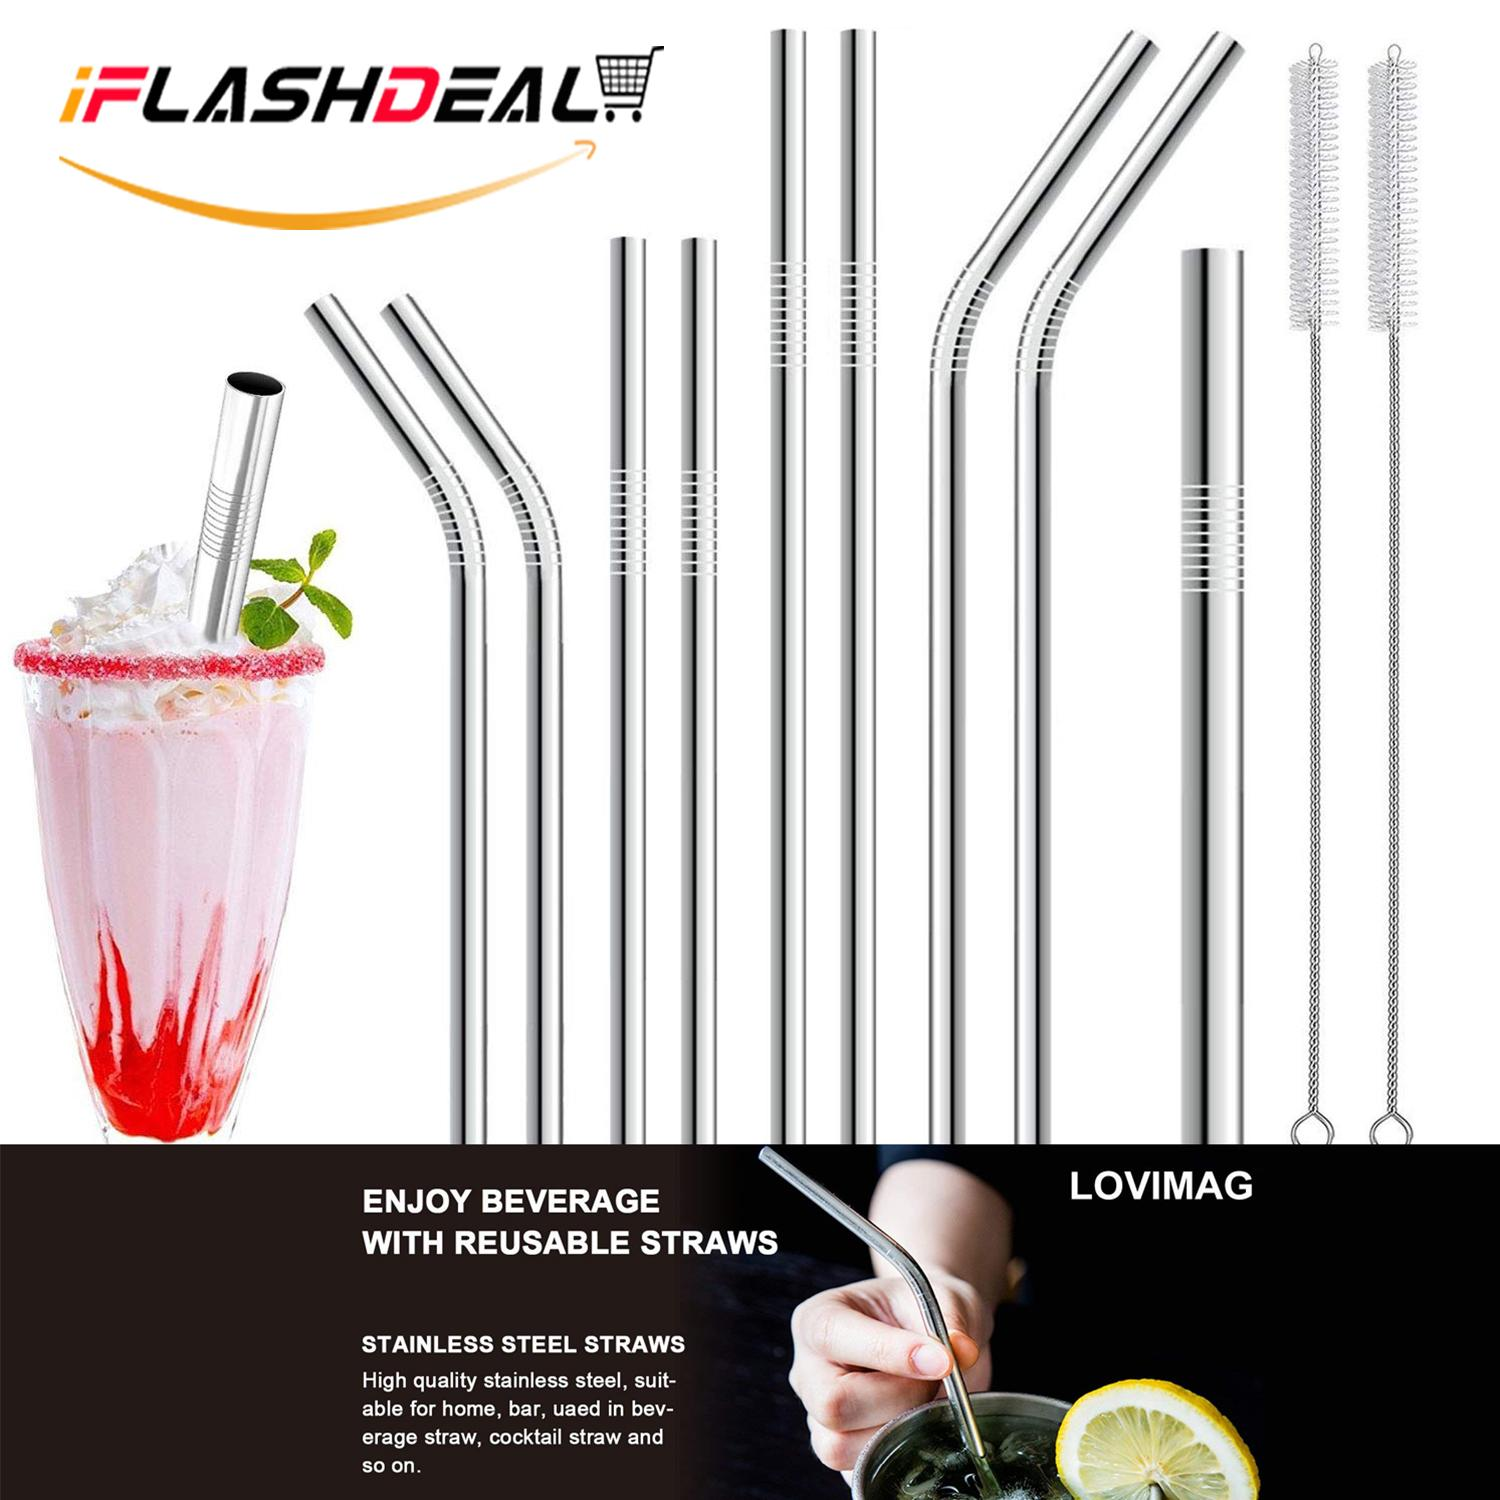 Iflashdeal Stainless Steel Straws Reusable Metal Straw Set Drinking Straws 11pcs Set With 4.8inch Wide Straw 4 Straight 4 Bent By Iflashdeal.